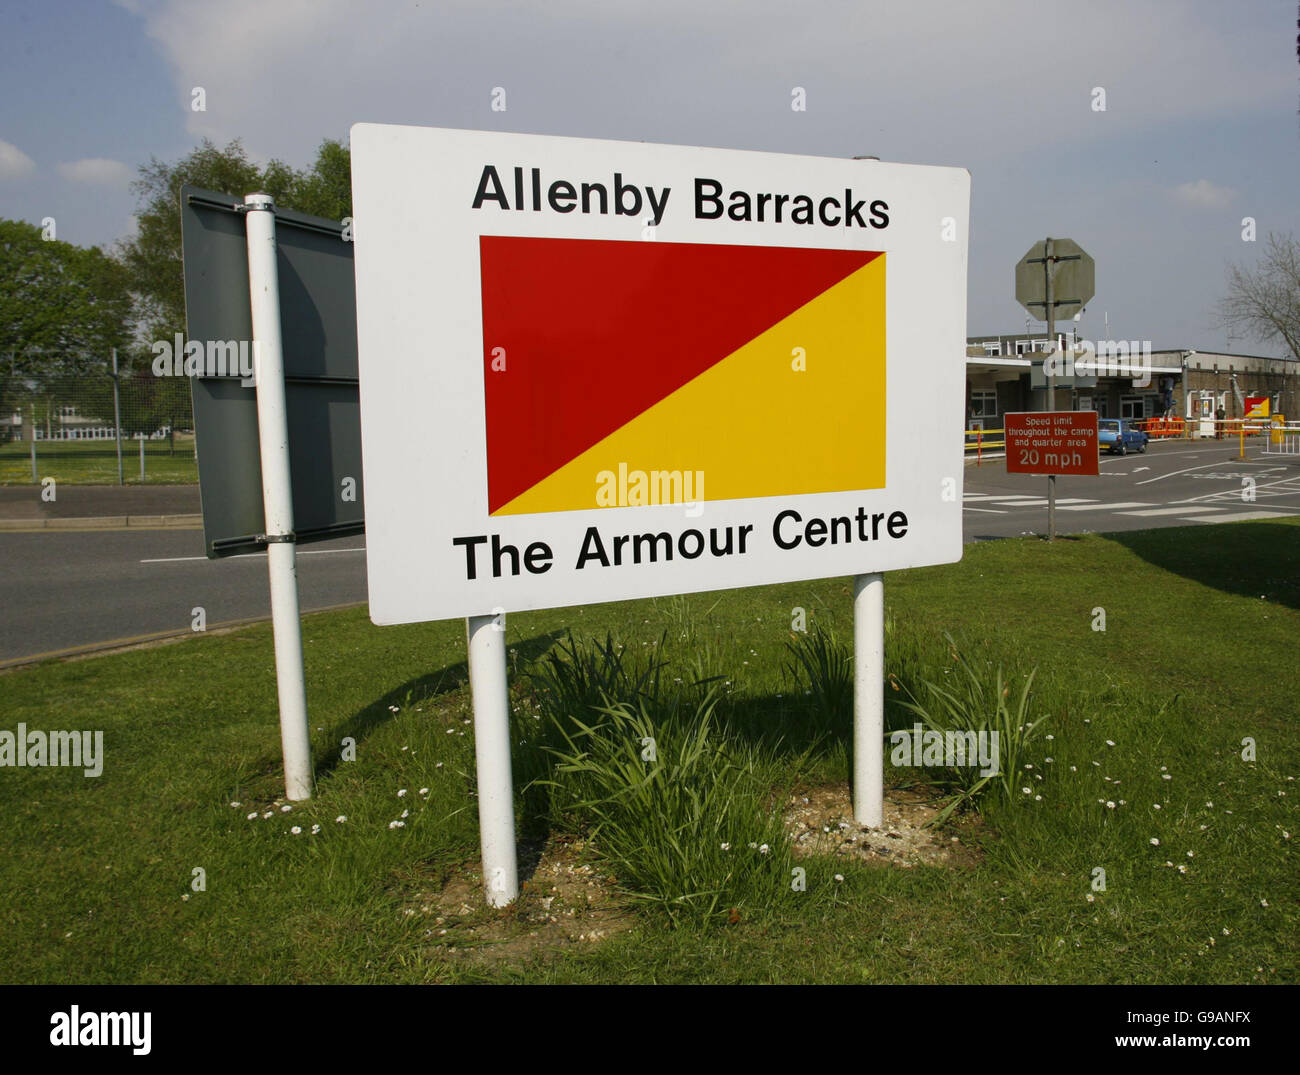 General view of the Army's Armour Centre, Allenby Barracks, Bovington near Wareham, Dorset. Prince Harry will - Stock Image